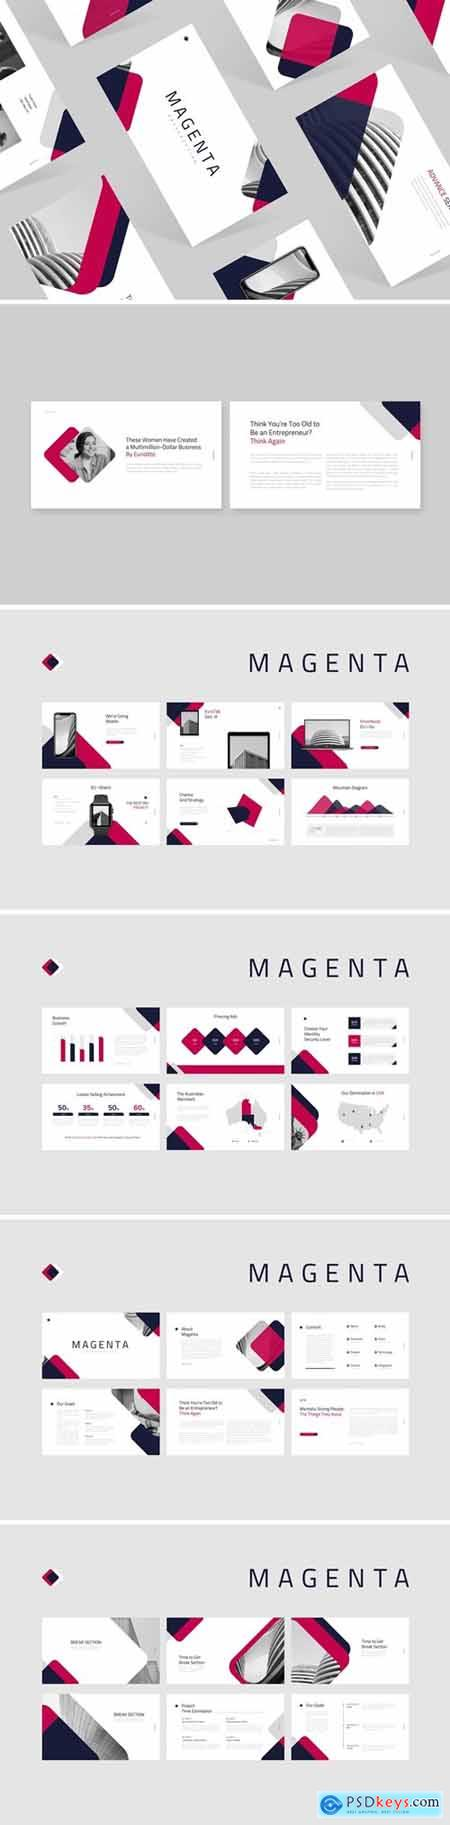 Magenta Powerpoint, Keynote and Google Slides Templates